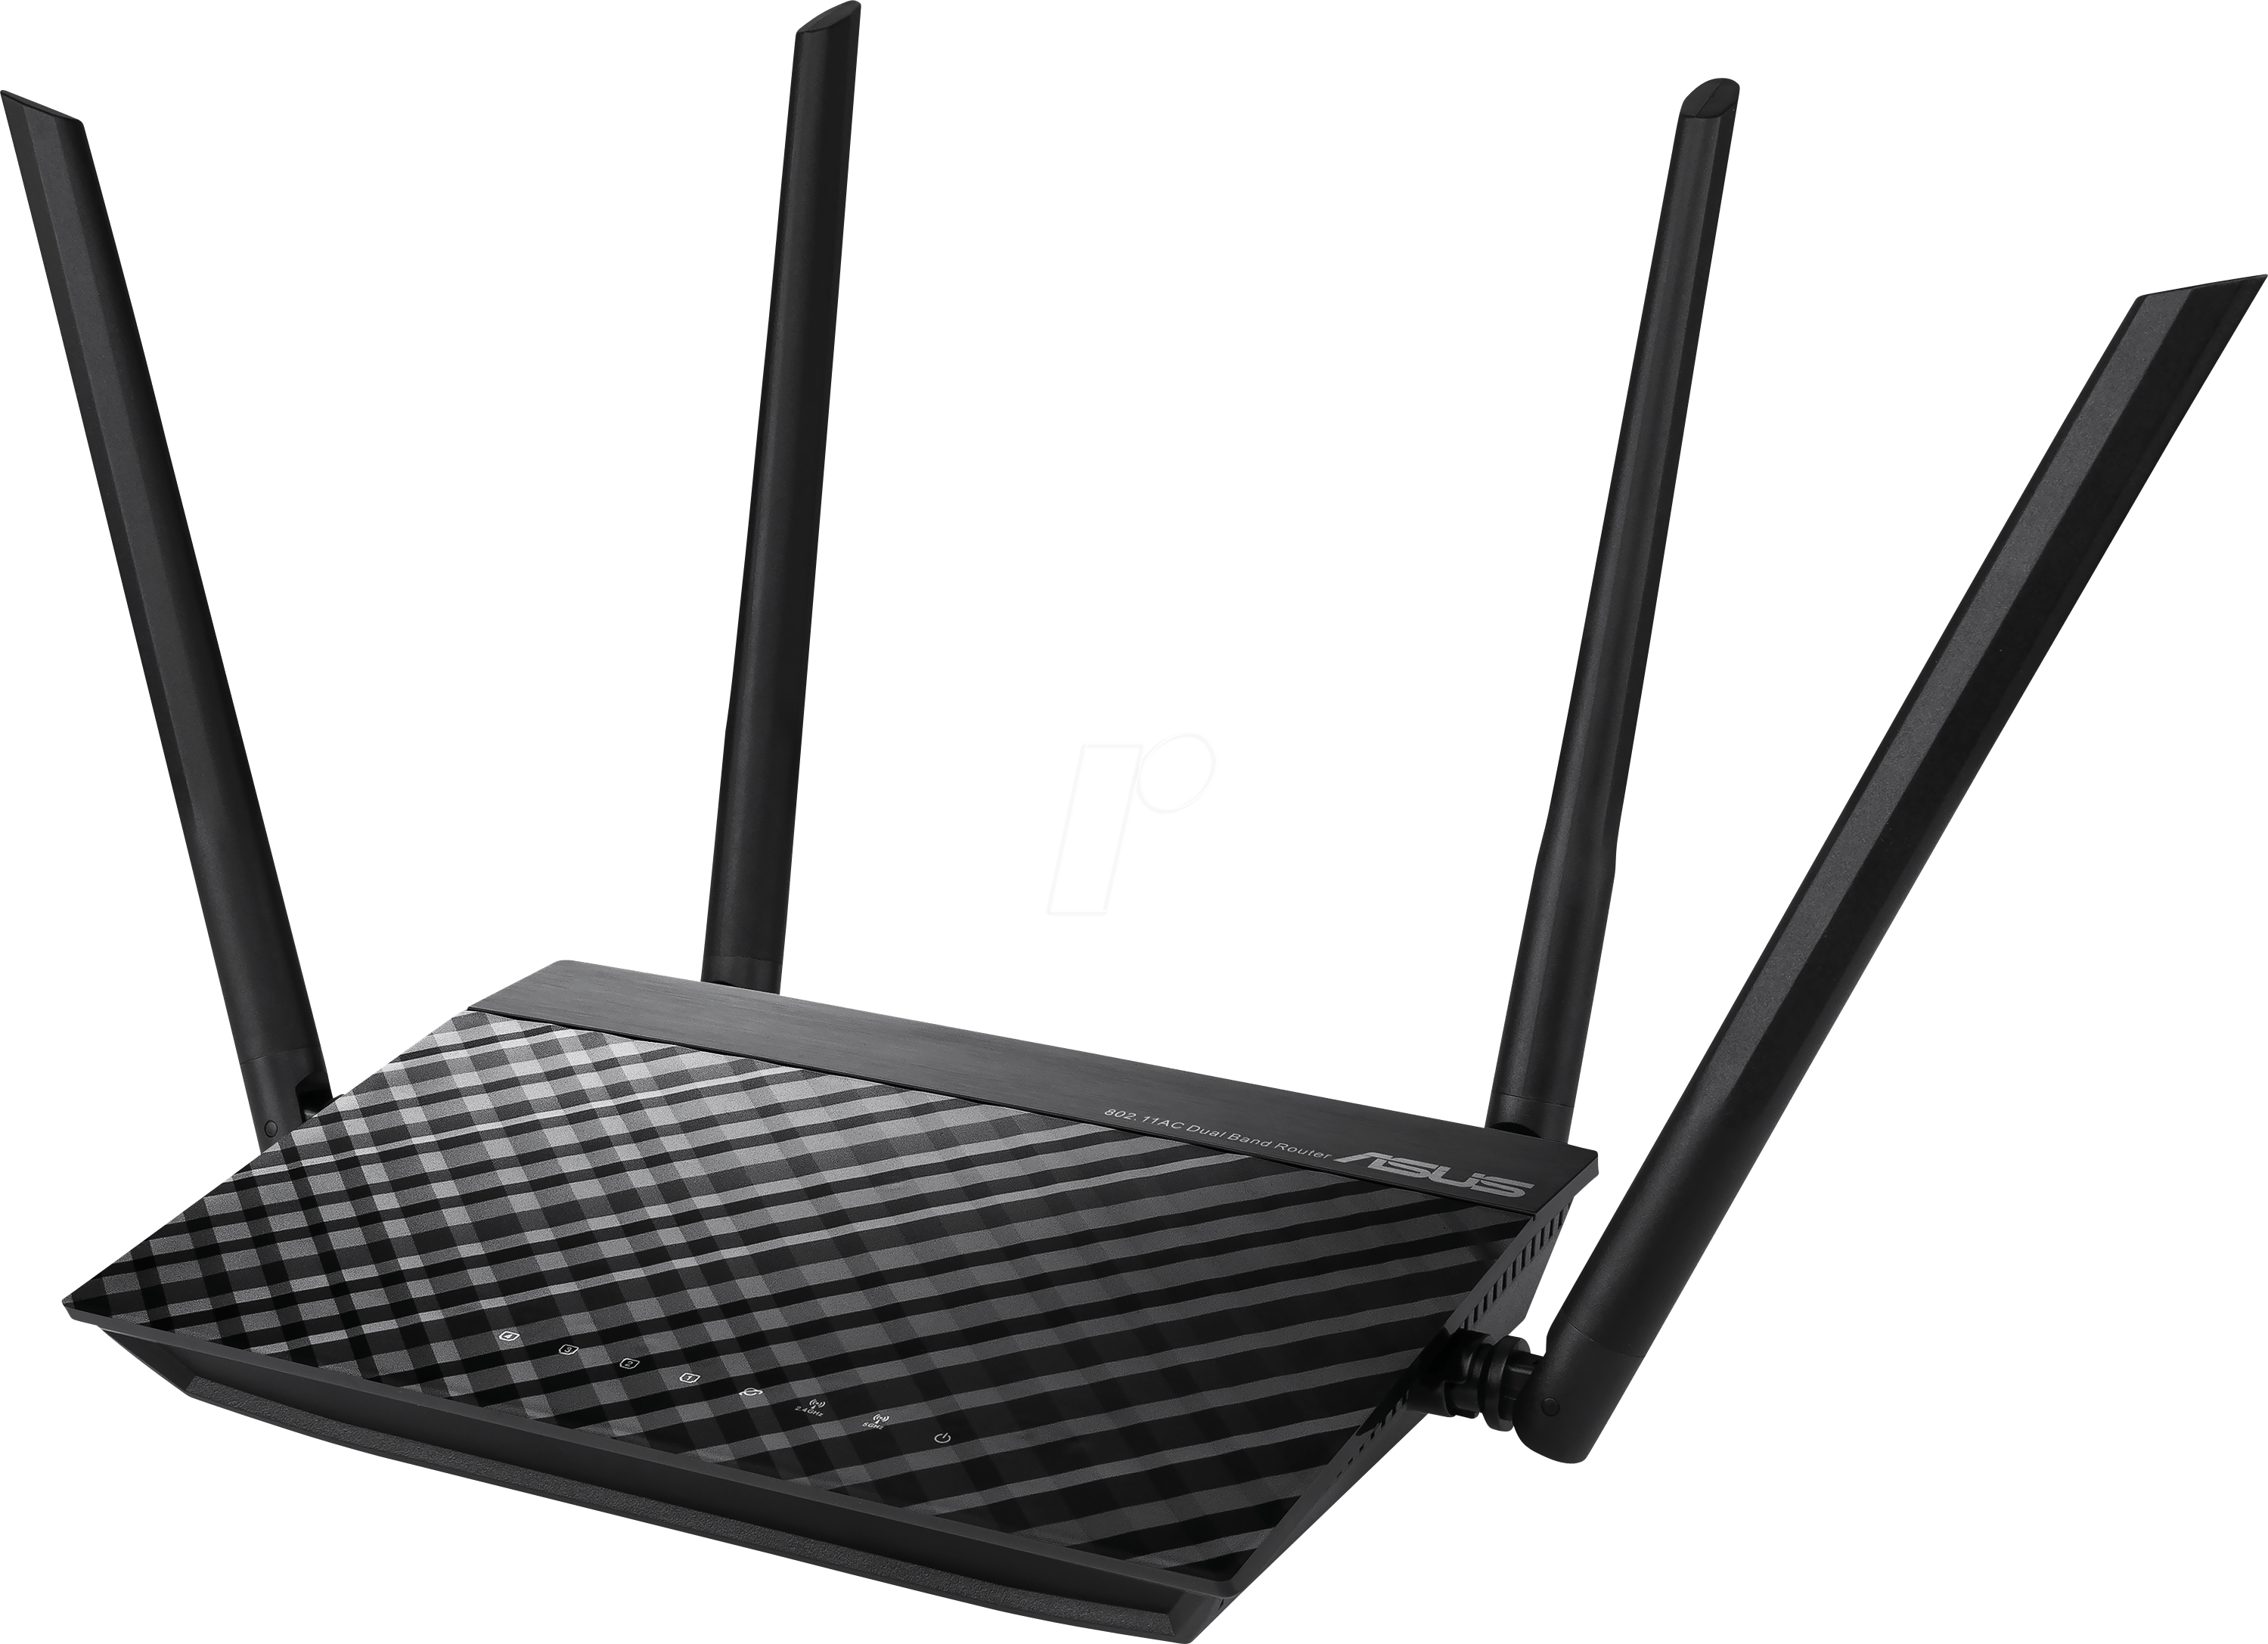 ASUS RT-AC51 WLAN Router 2.4 5 GHz 433 MBit s